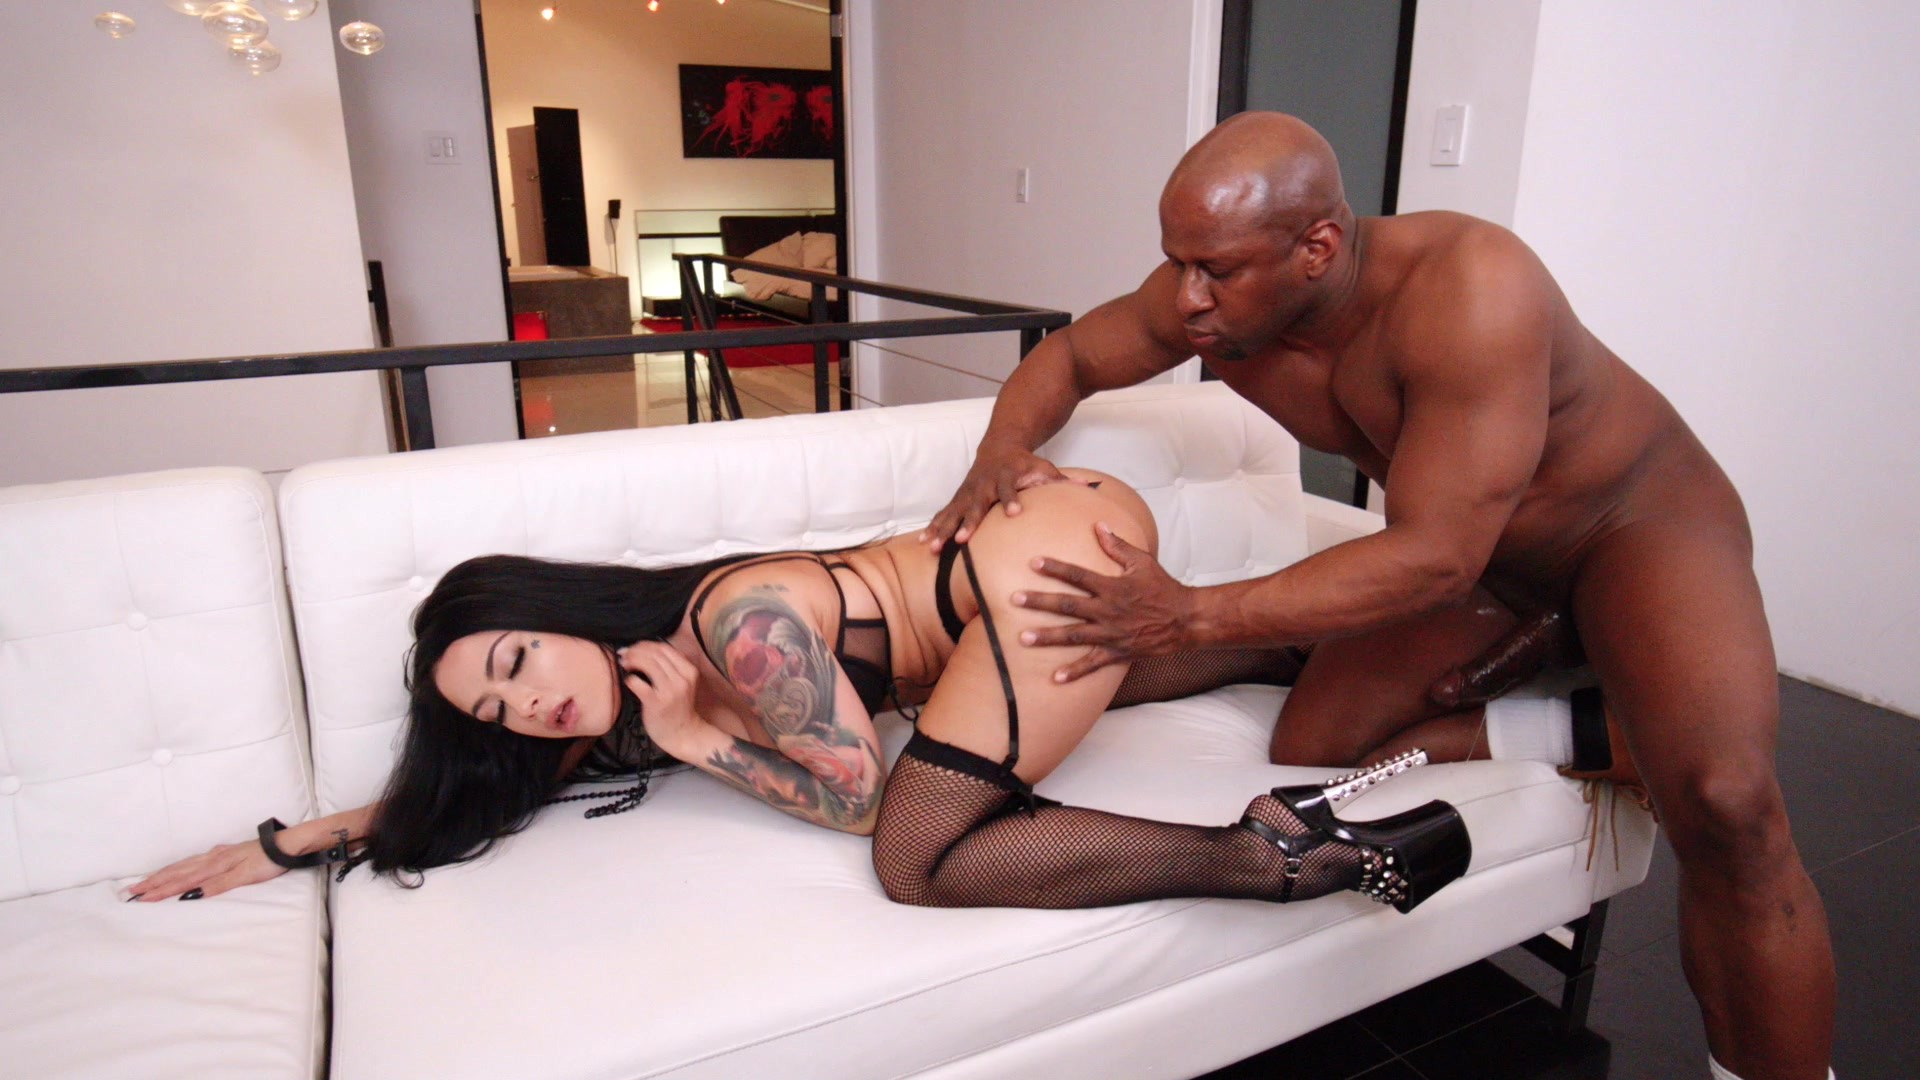 Scene with Katrina Jade - image 7 out of 20